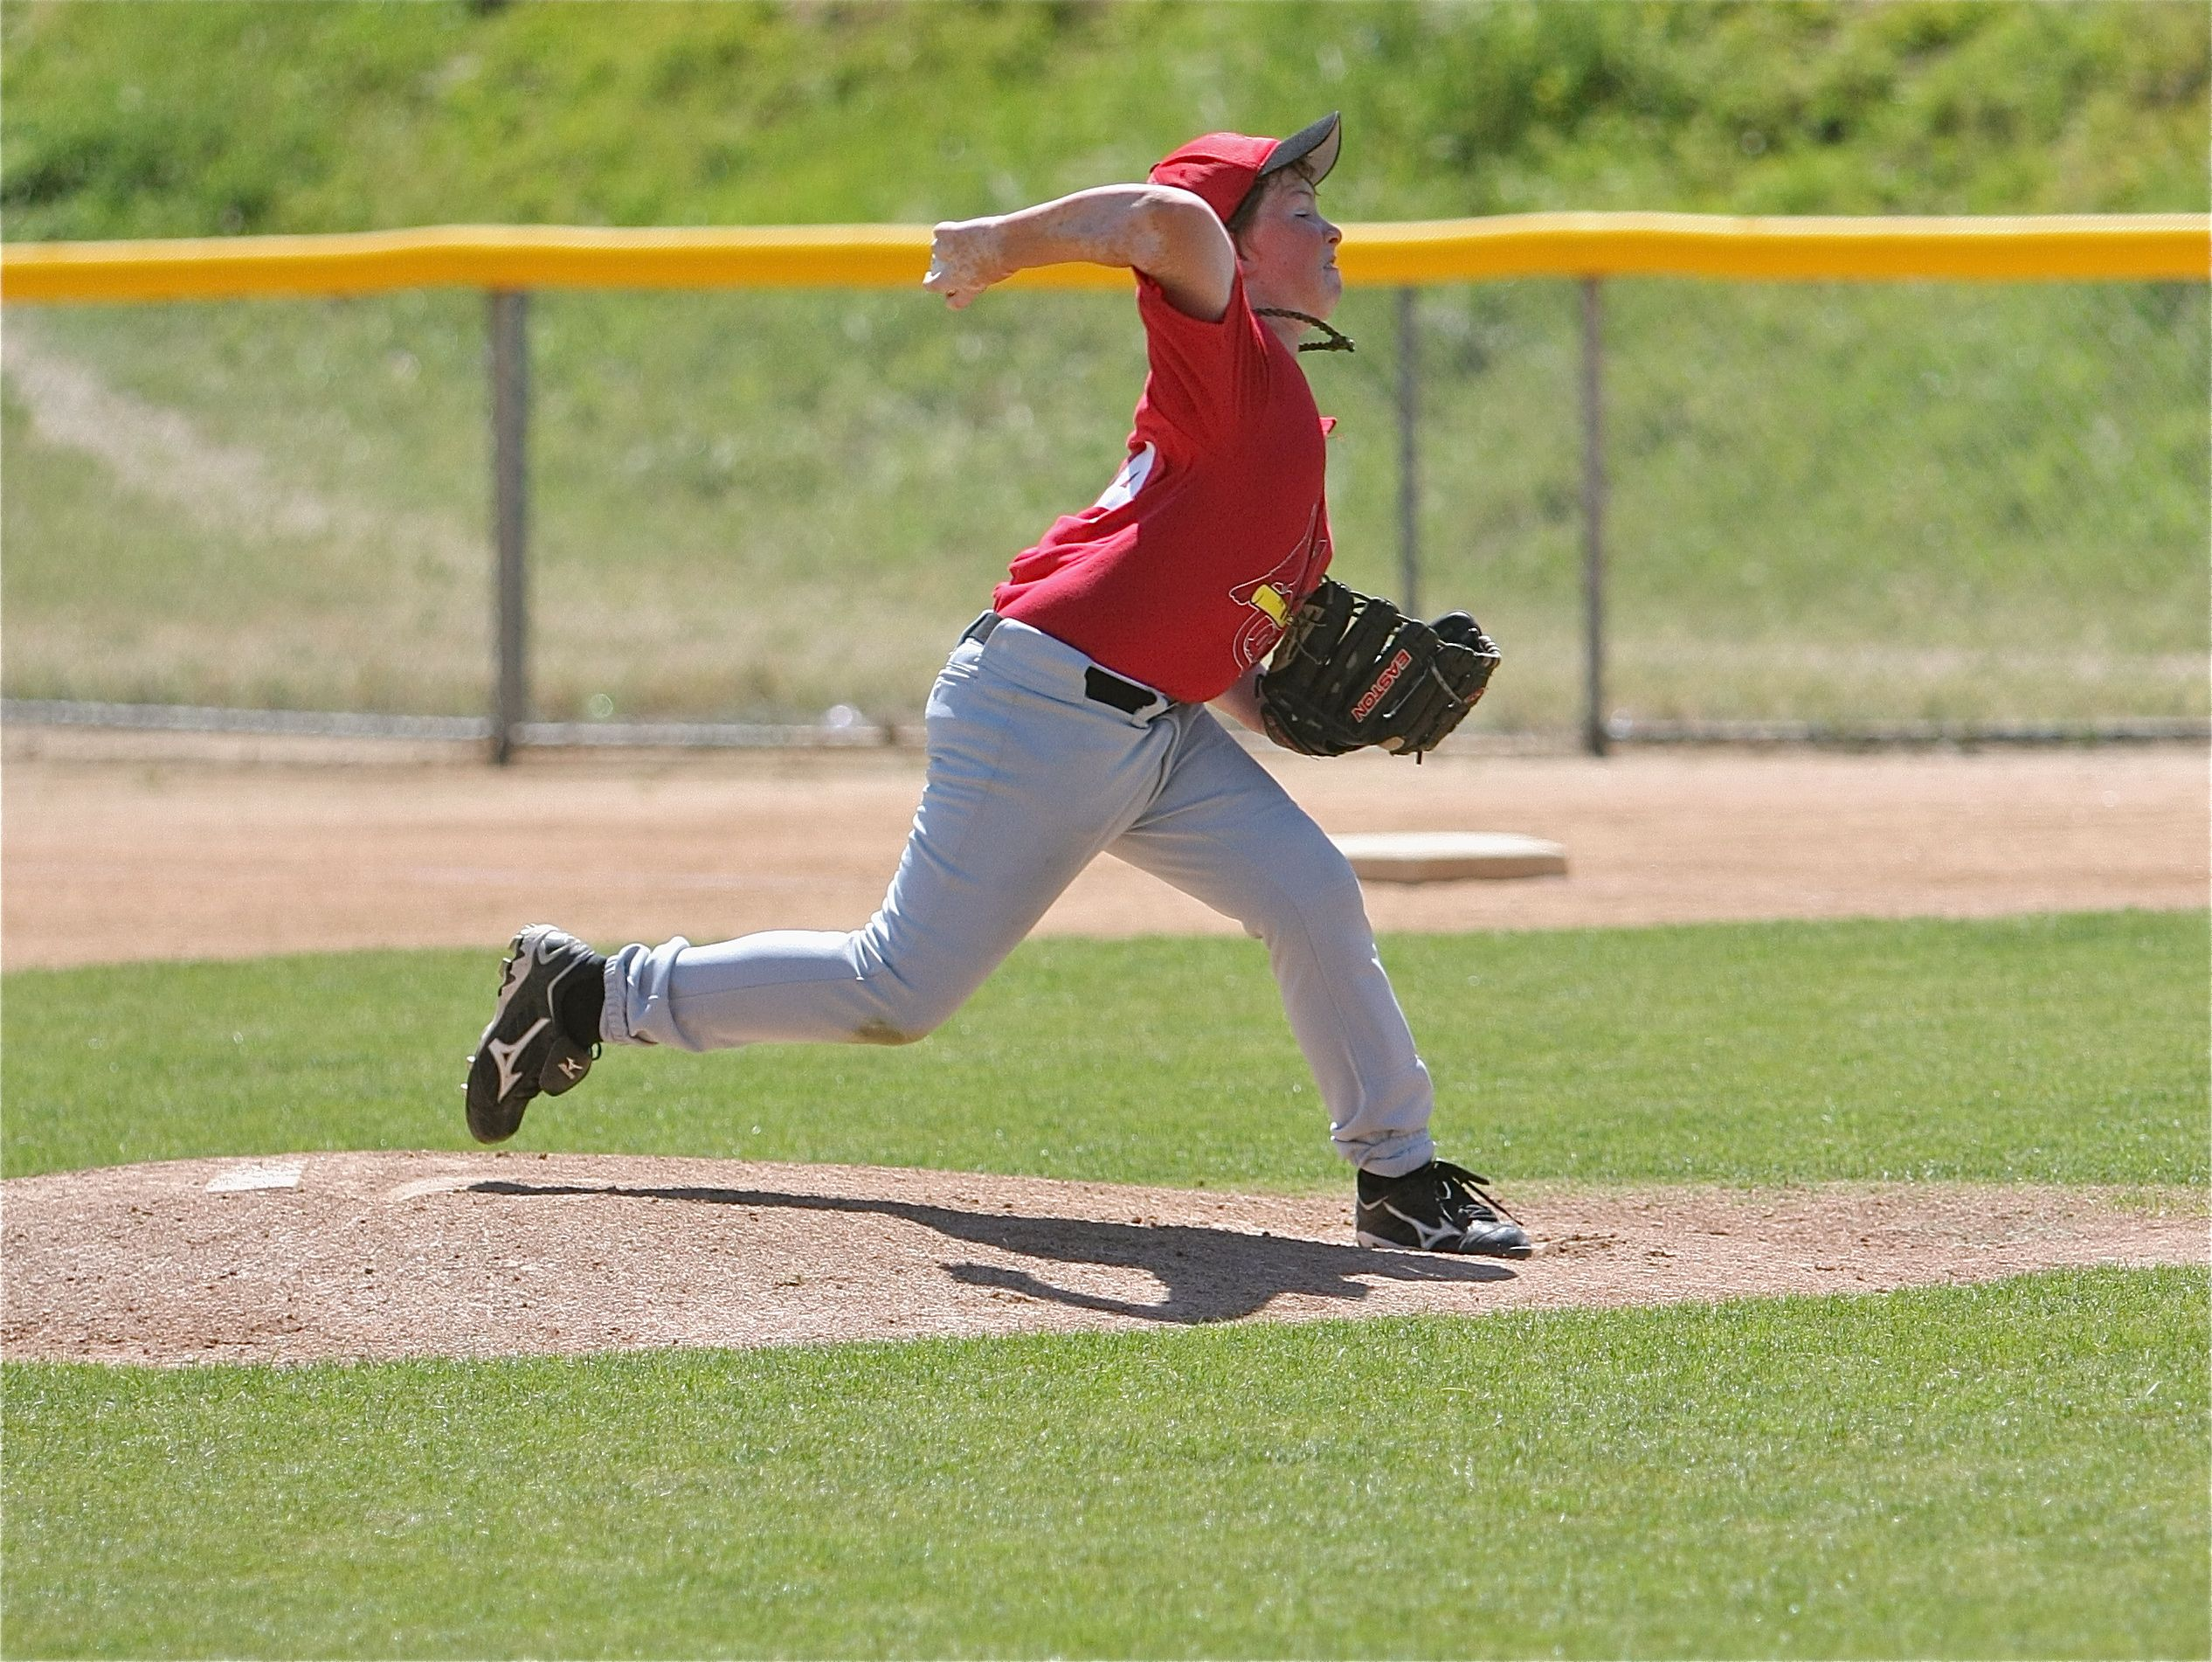 Little League pitching tips for pitchers image